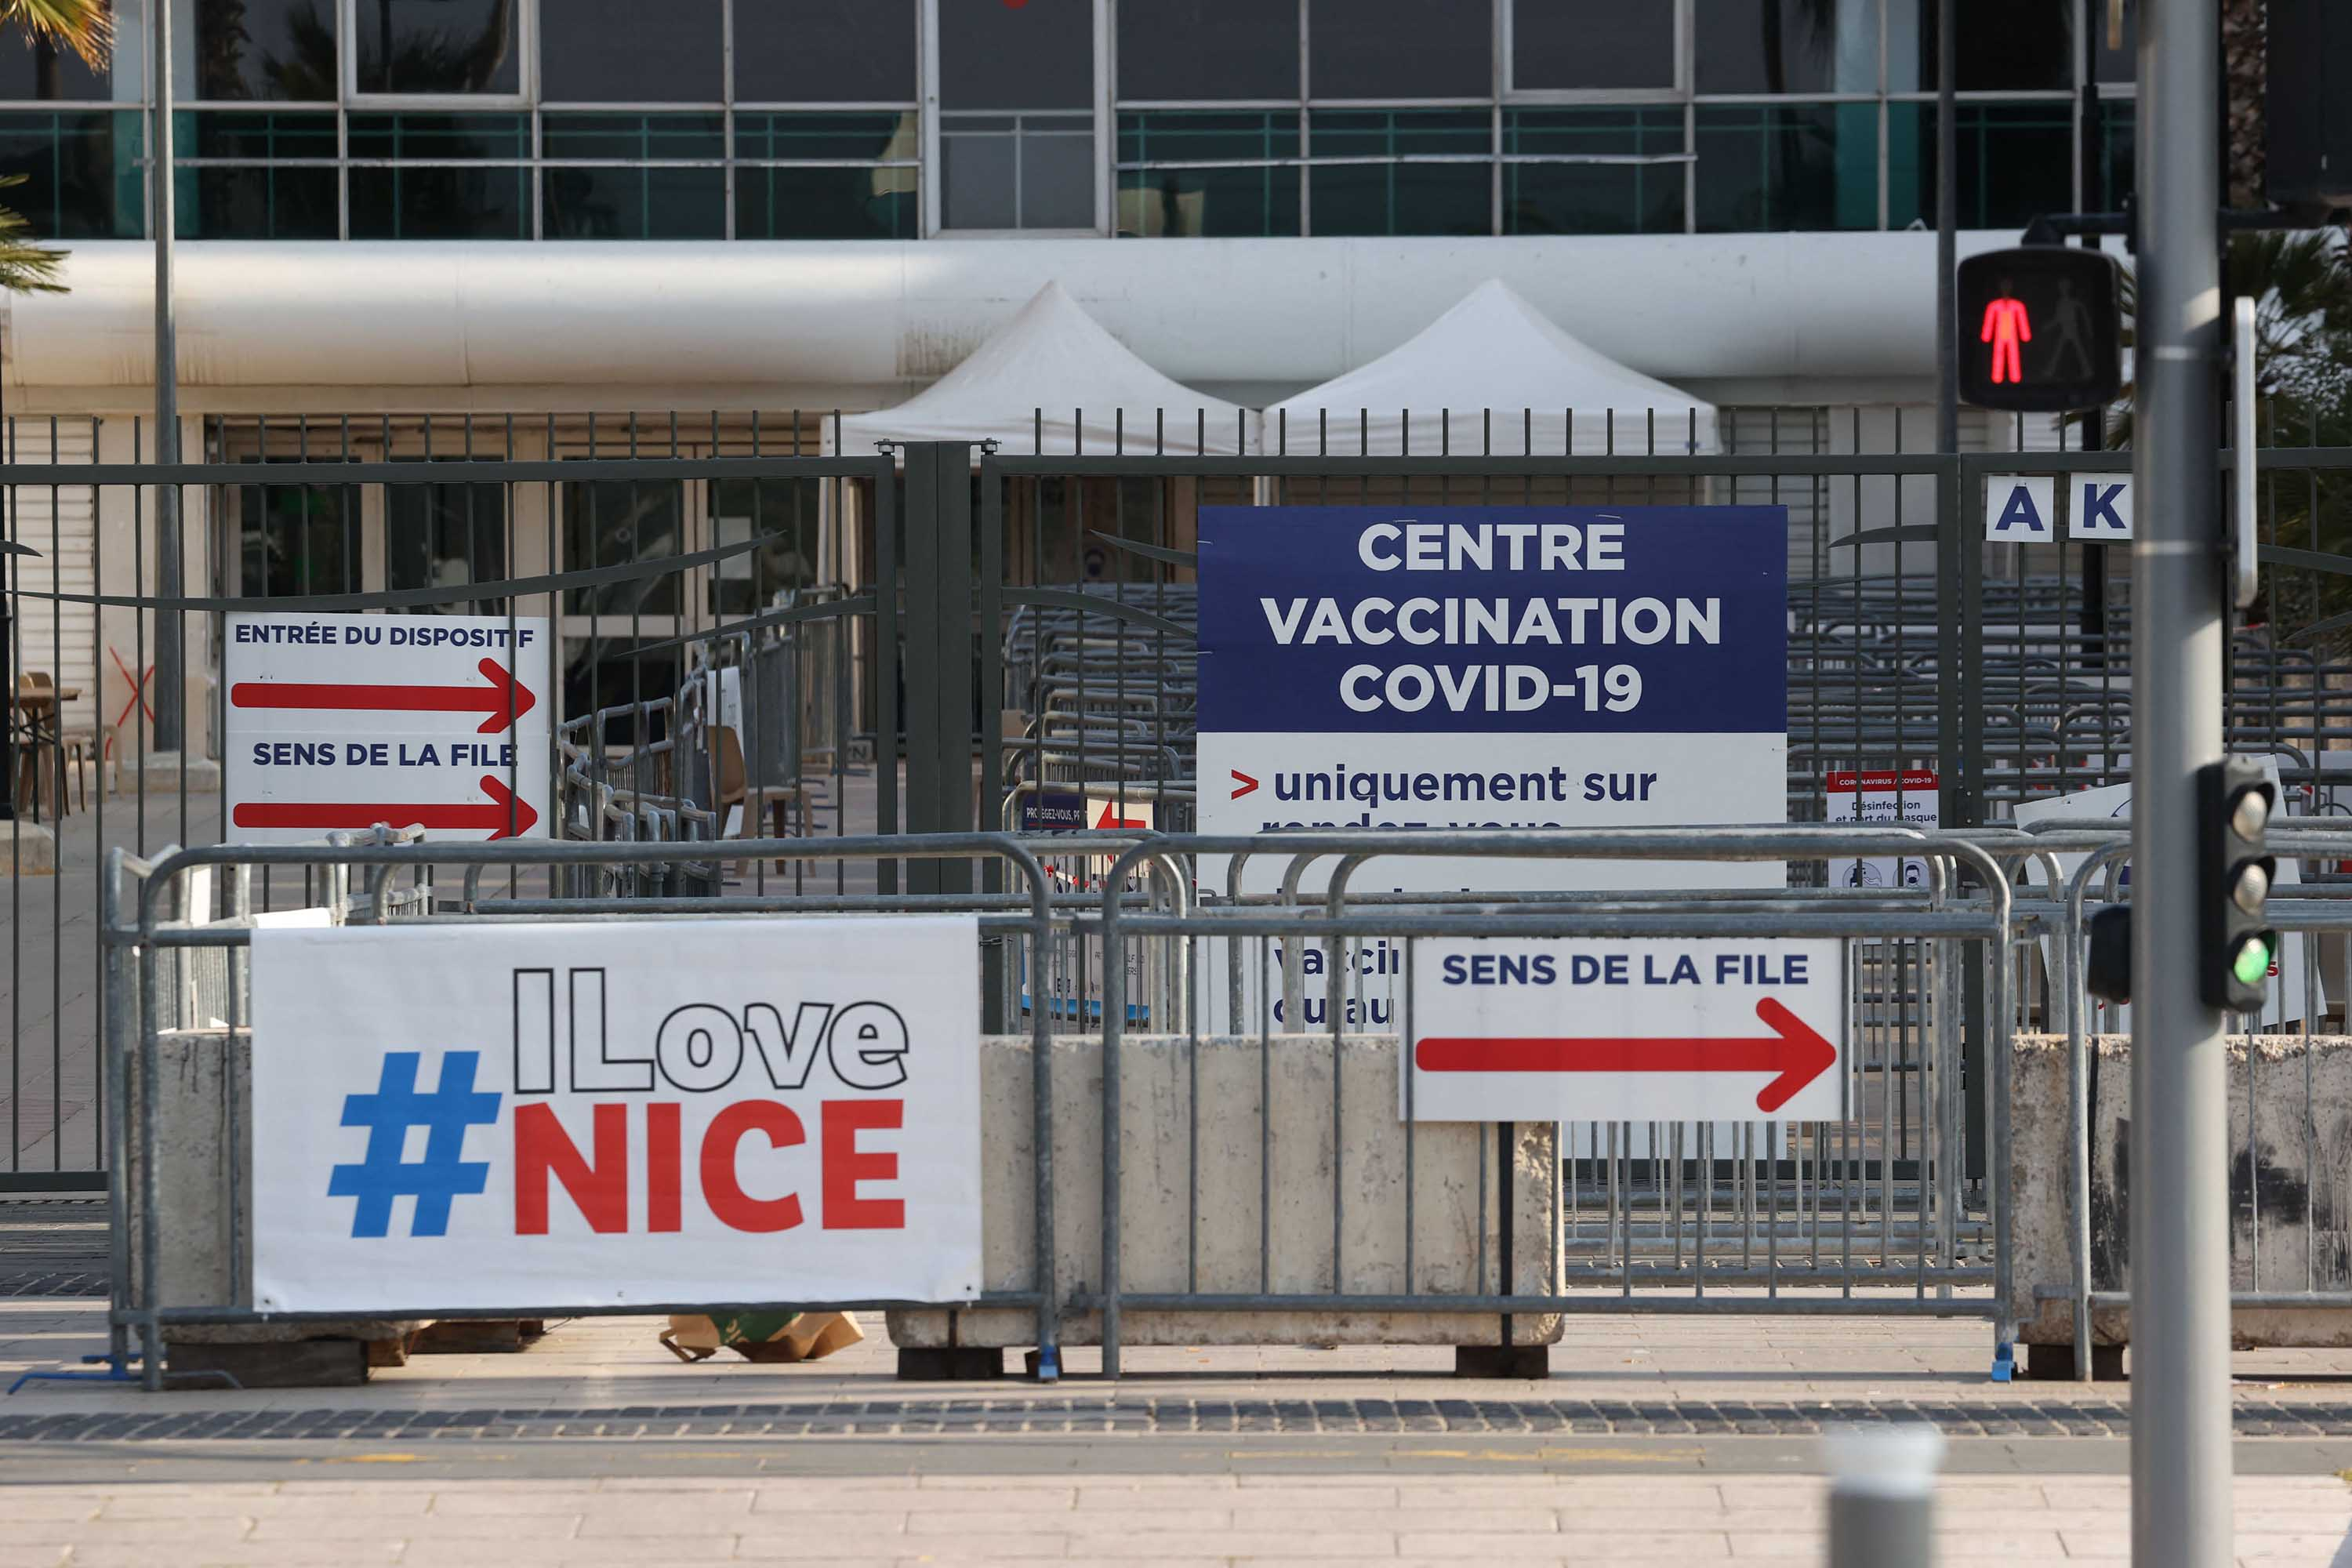 A closed vaccination center is pictured in Nice, France, on April 18. That facility closed on April 17, due to a lack of vaccine candidates.